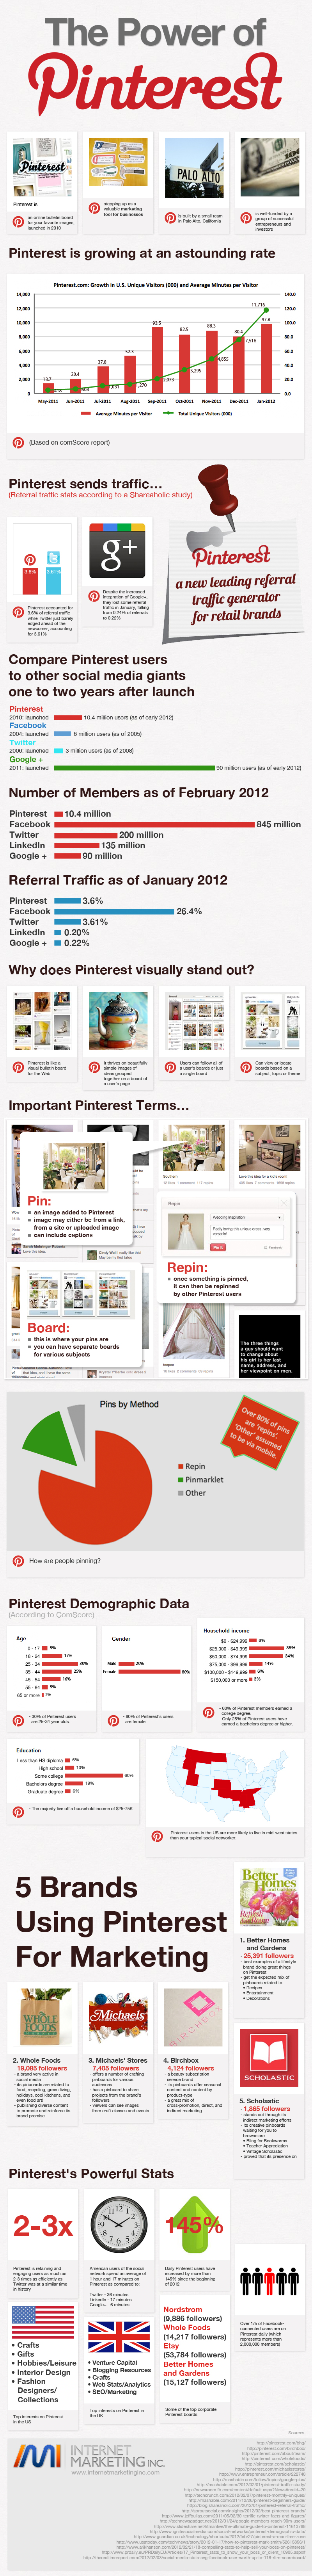 the-power-of-pinterest-infographic1